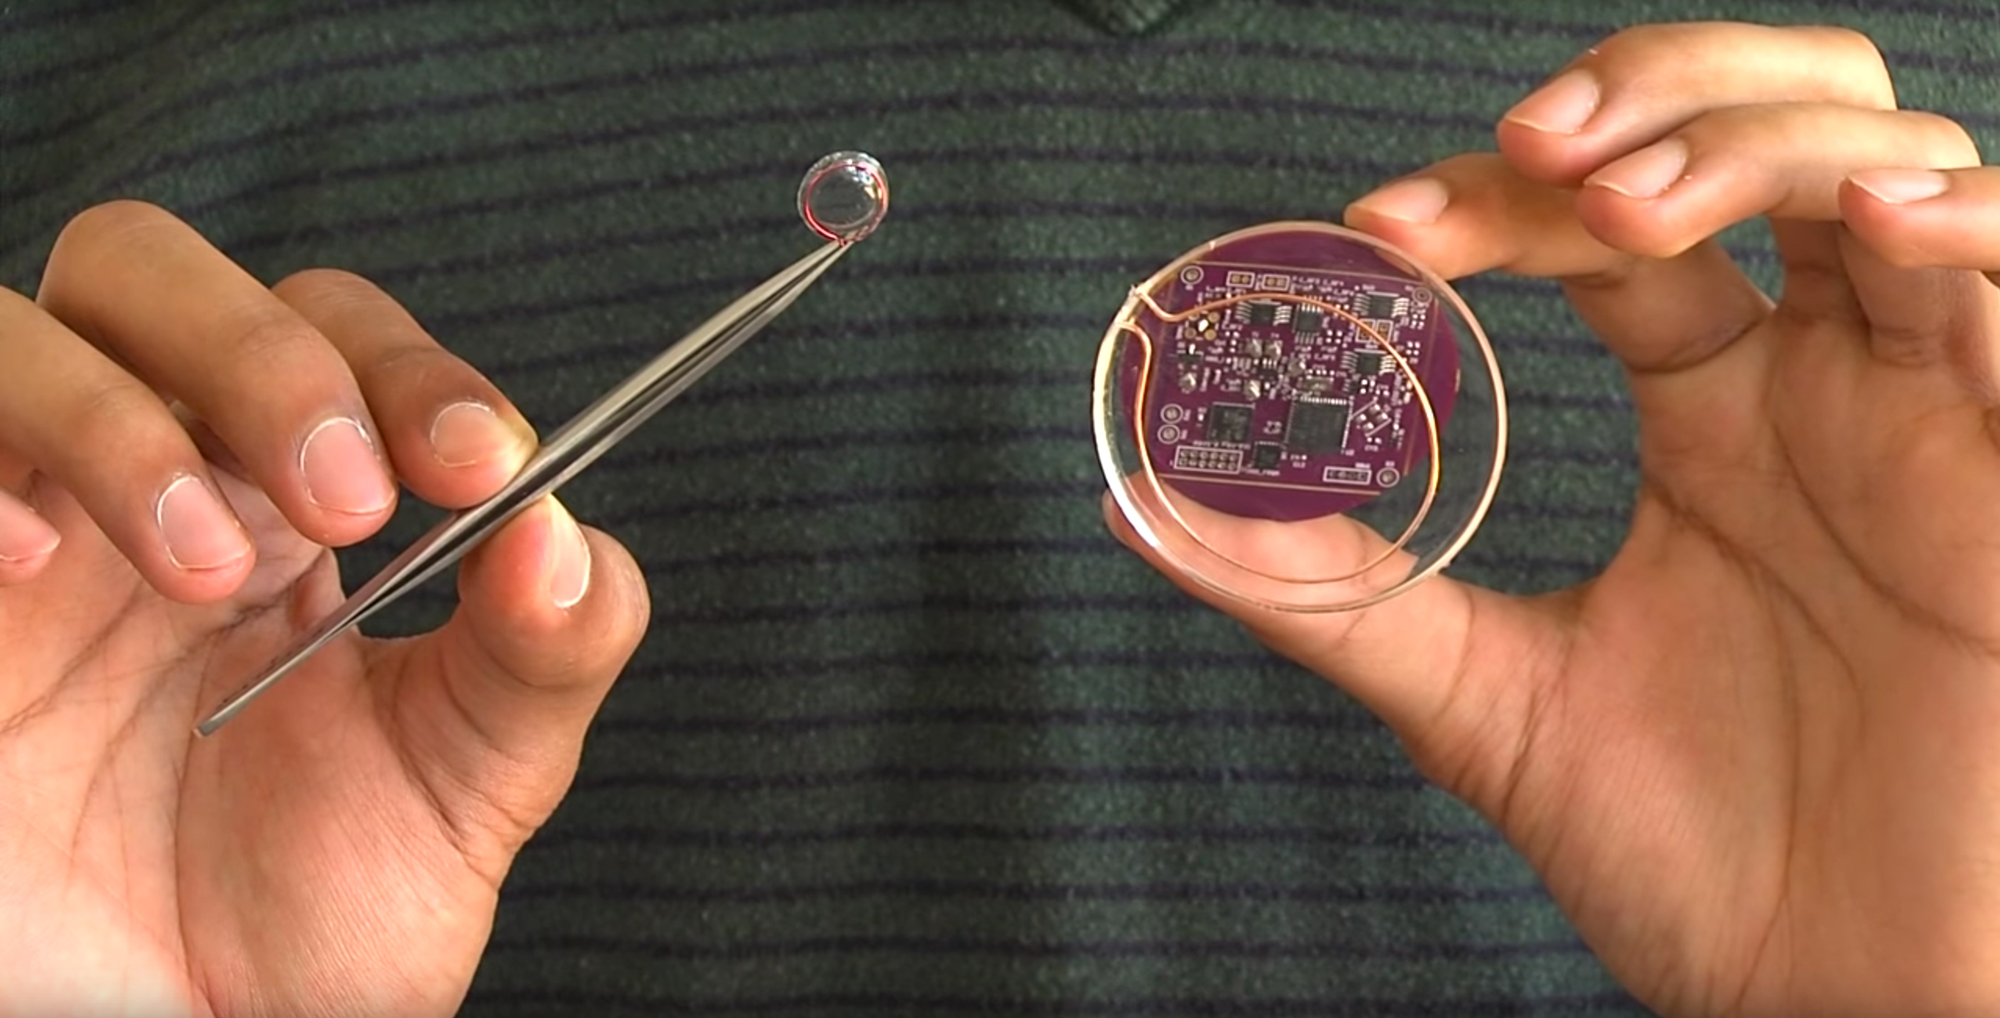 A prototype contact lens, left, and brain implant, right, can communicate over Wi-Fi despite lacking batteries.